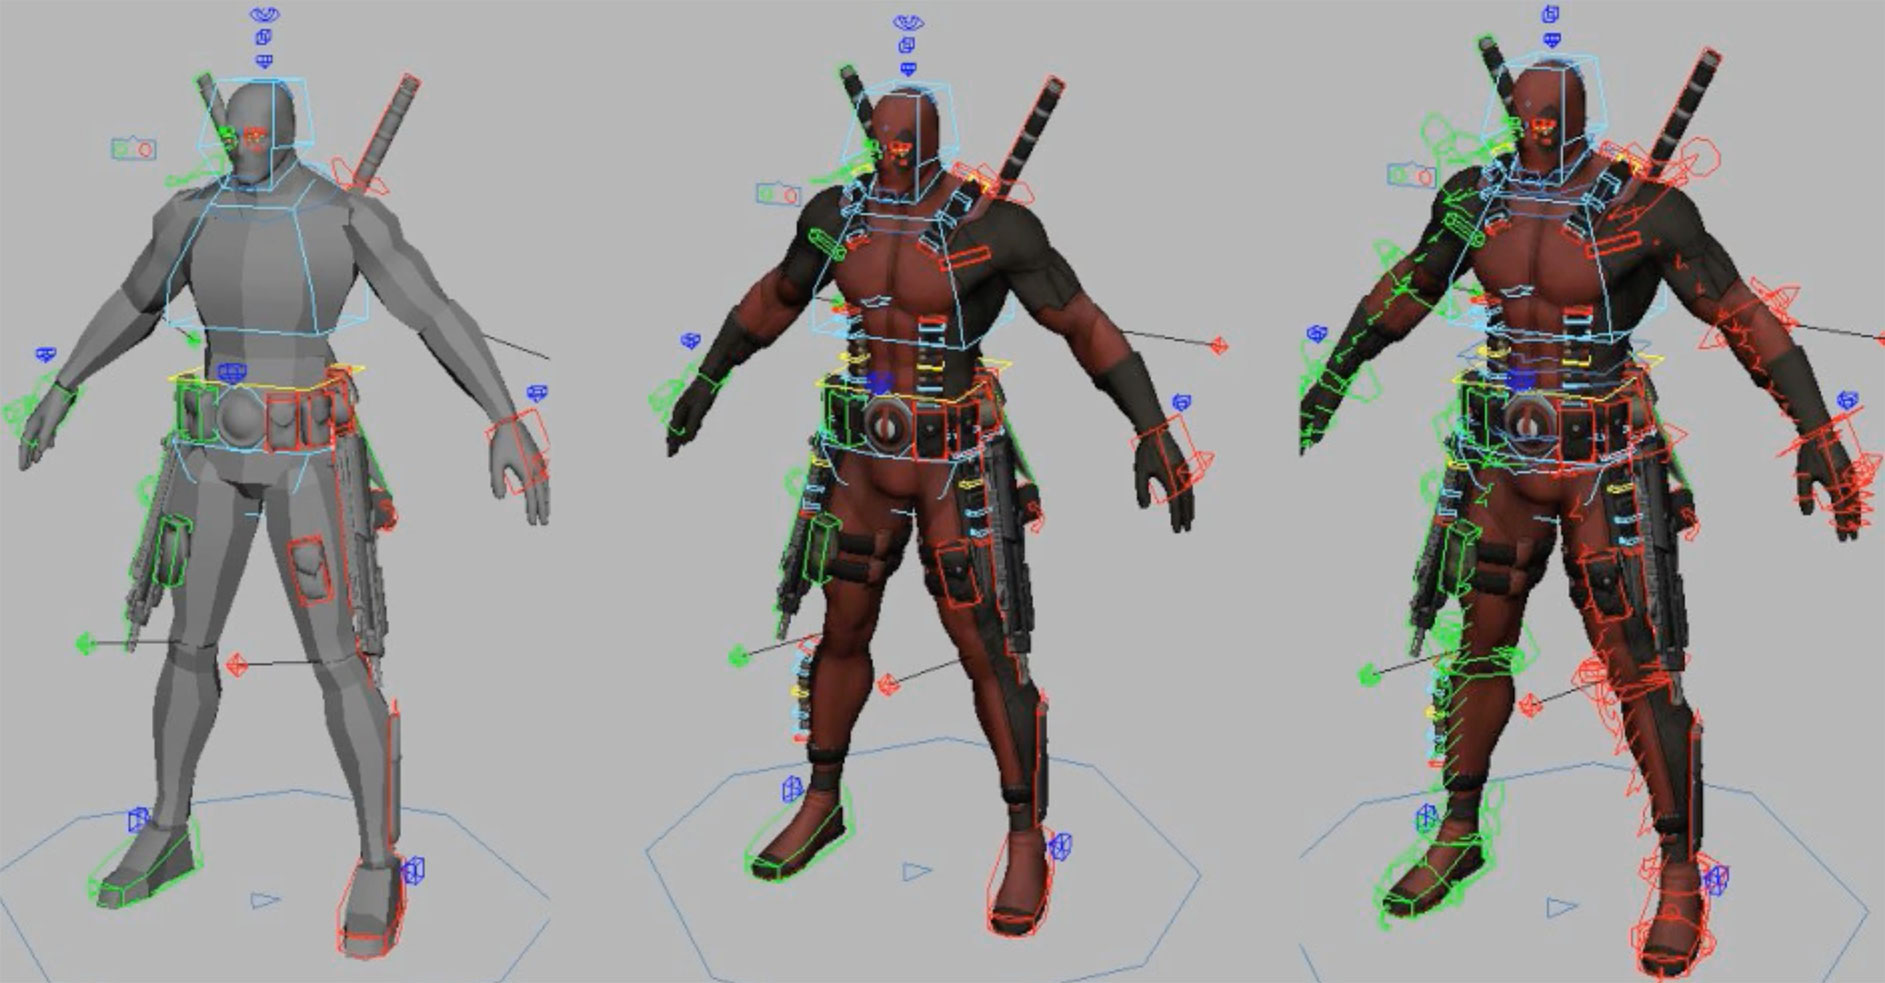 Download Free Rigged 3d Model | 3DArt